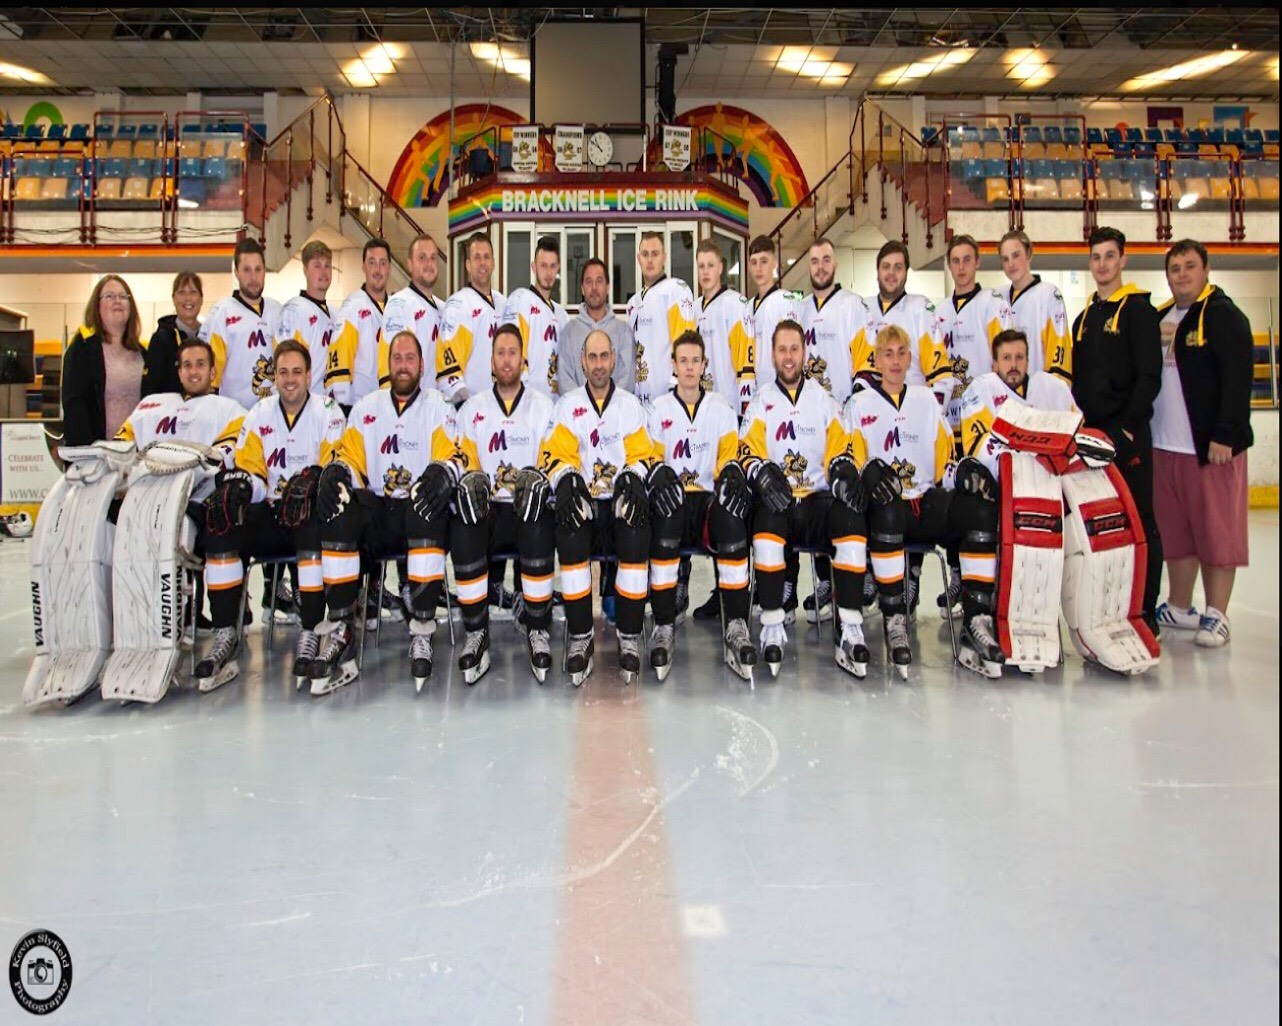 Pride of Bracknell winners and runners up to be given special treatment at ice hockey games